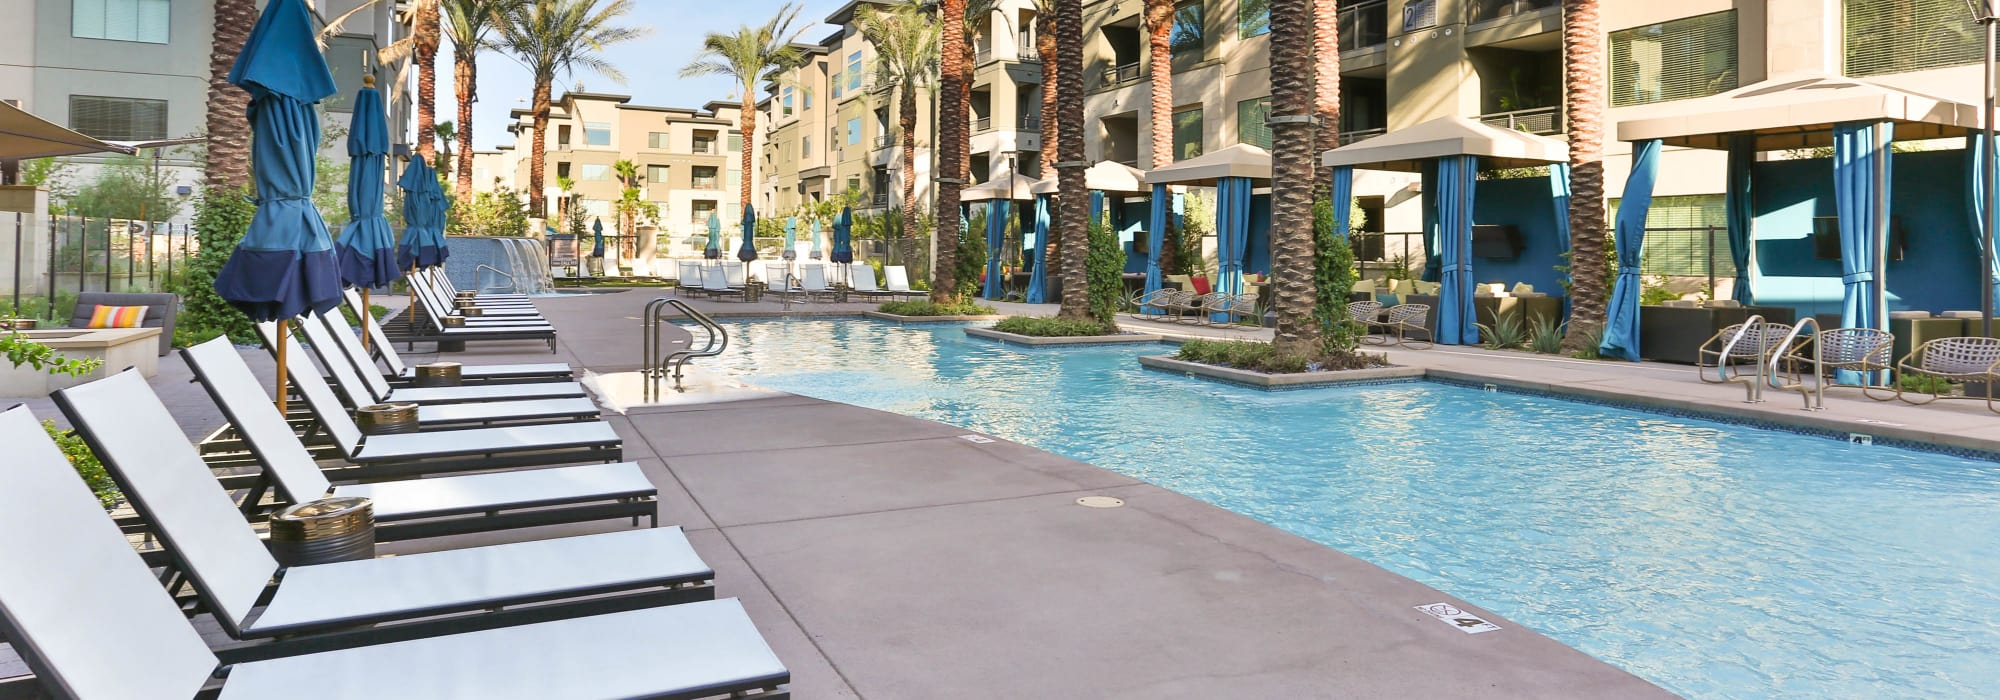 Chaise lounge chairs lined up by the swimming pool at Avant at Fashion Center in Chandler, Arizona